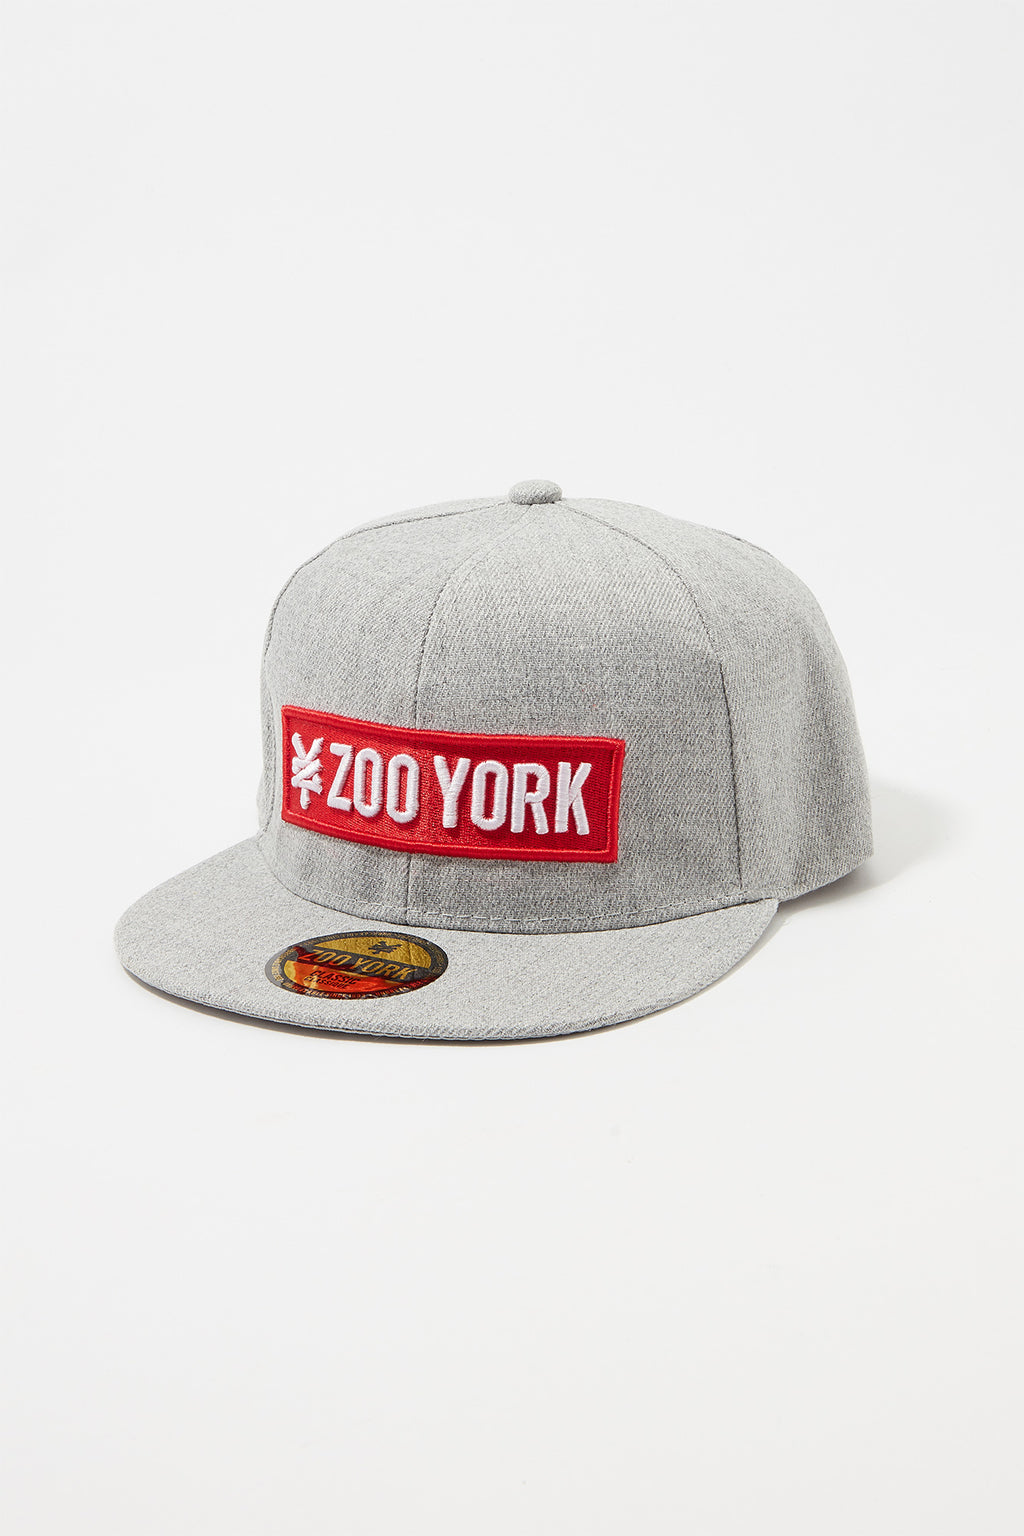 217e9854627 Zoo York Mens Red Box Logo Hat